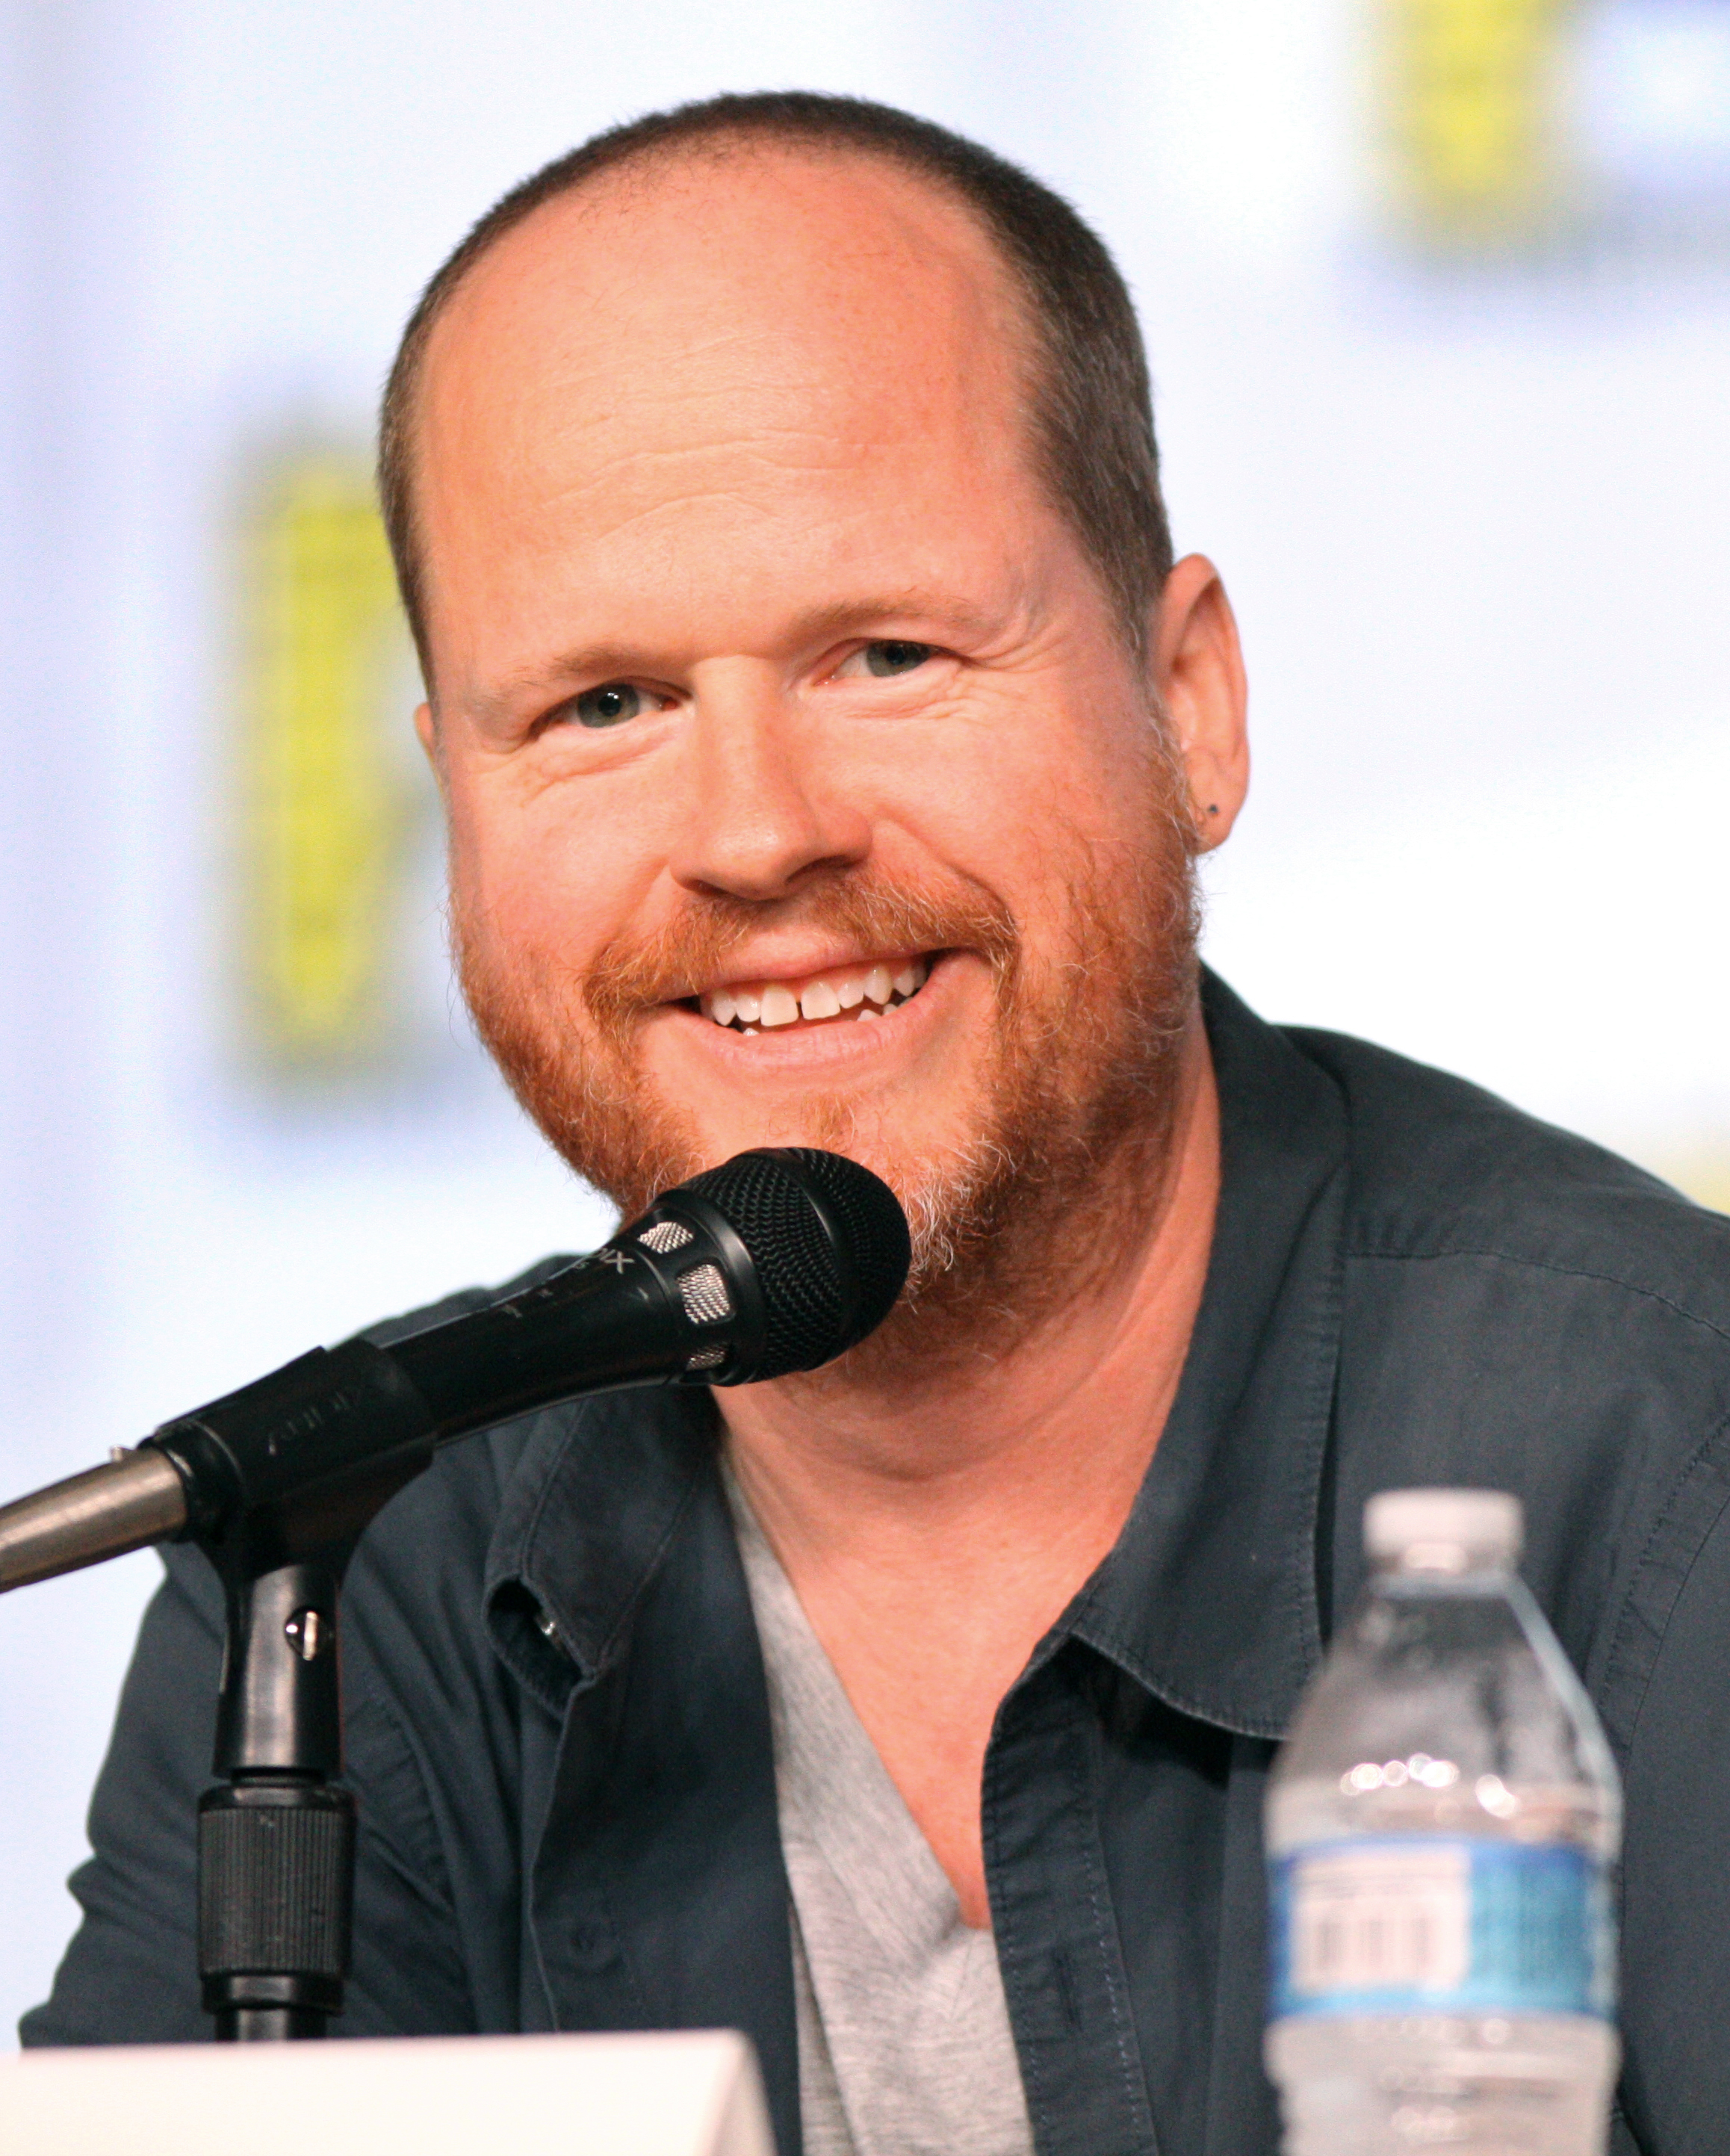 Joss Whedon earned a  million dollar salary, leaving the net worth at 100 million in 2017